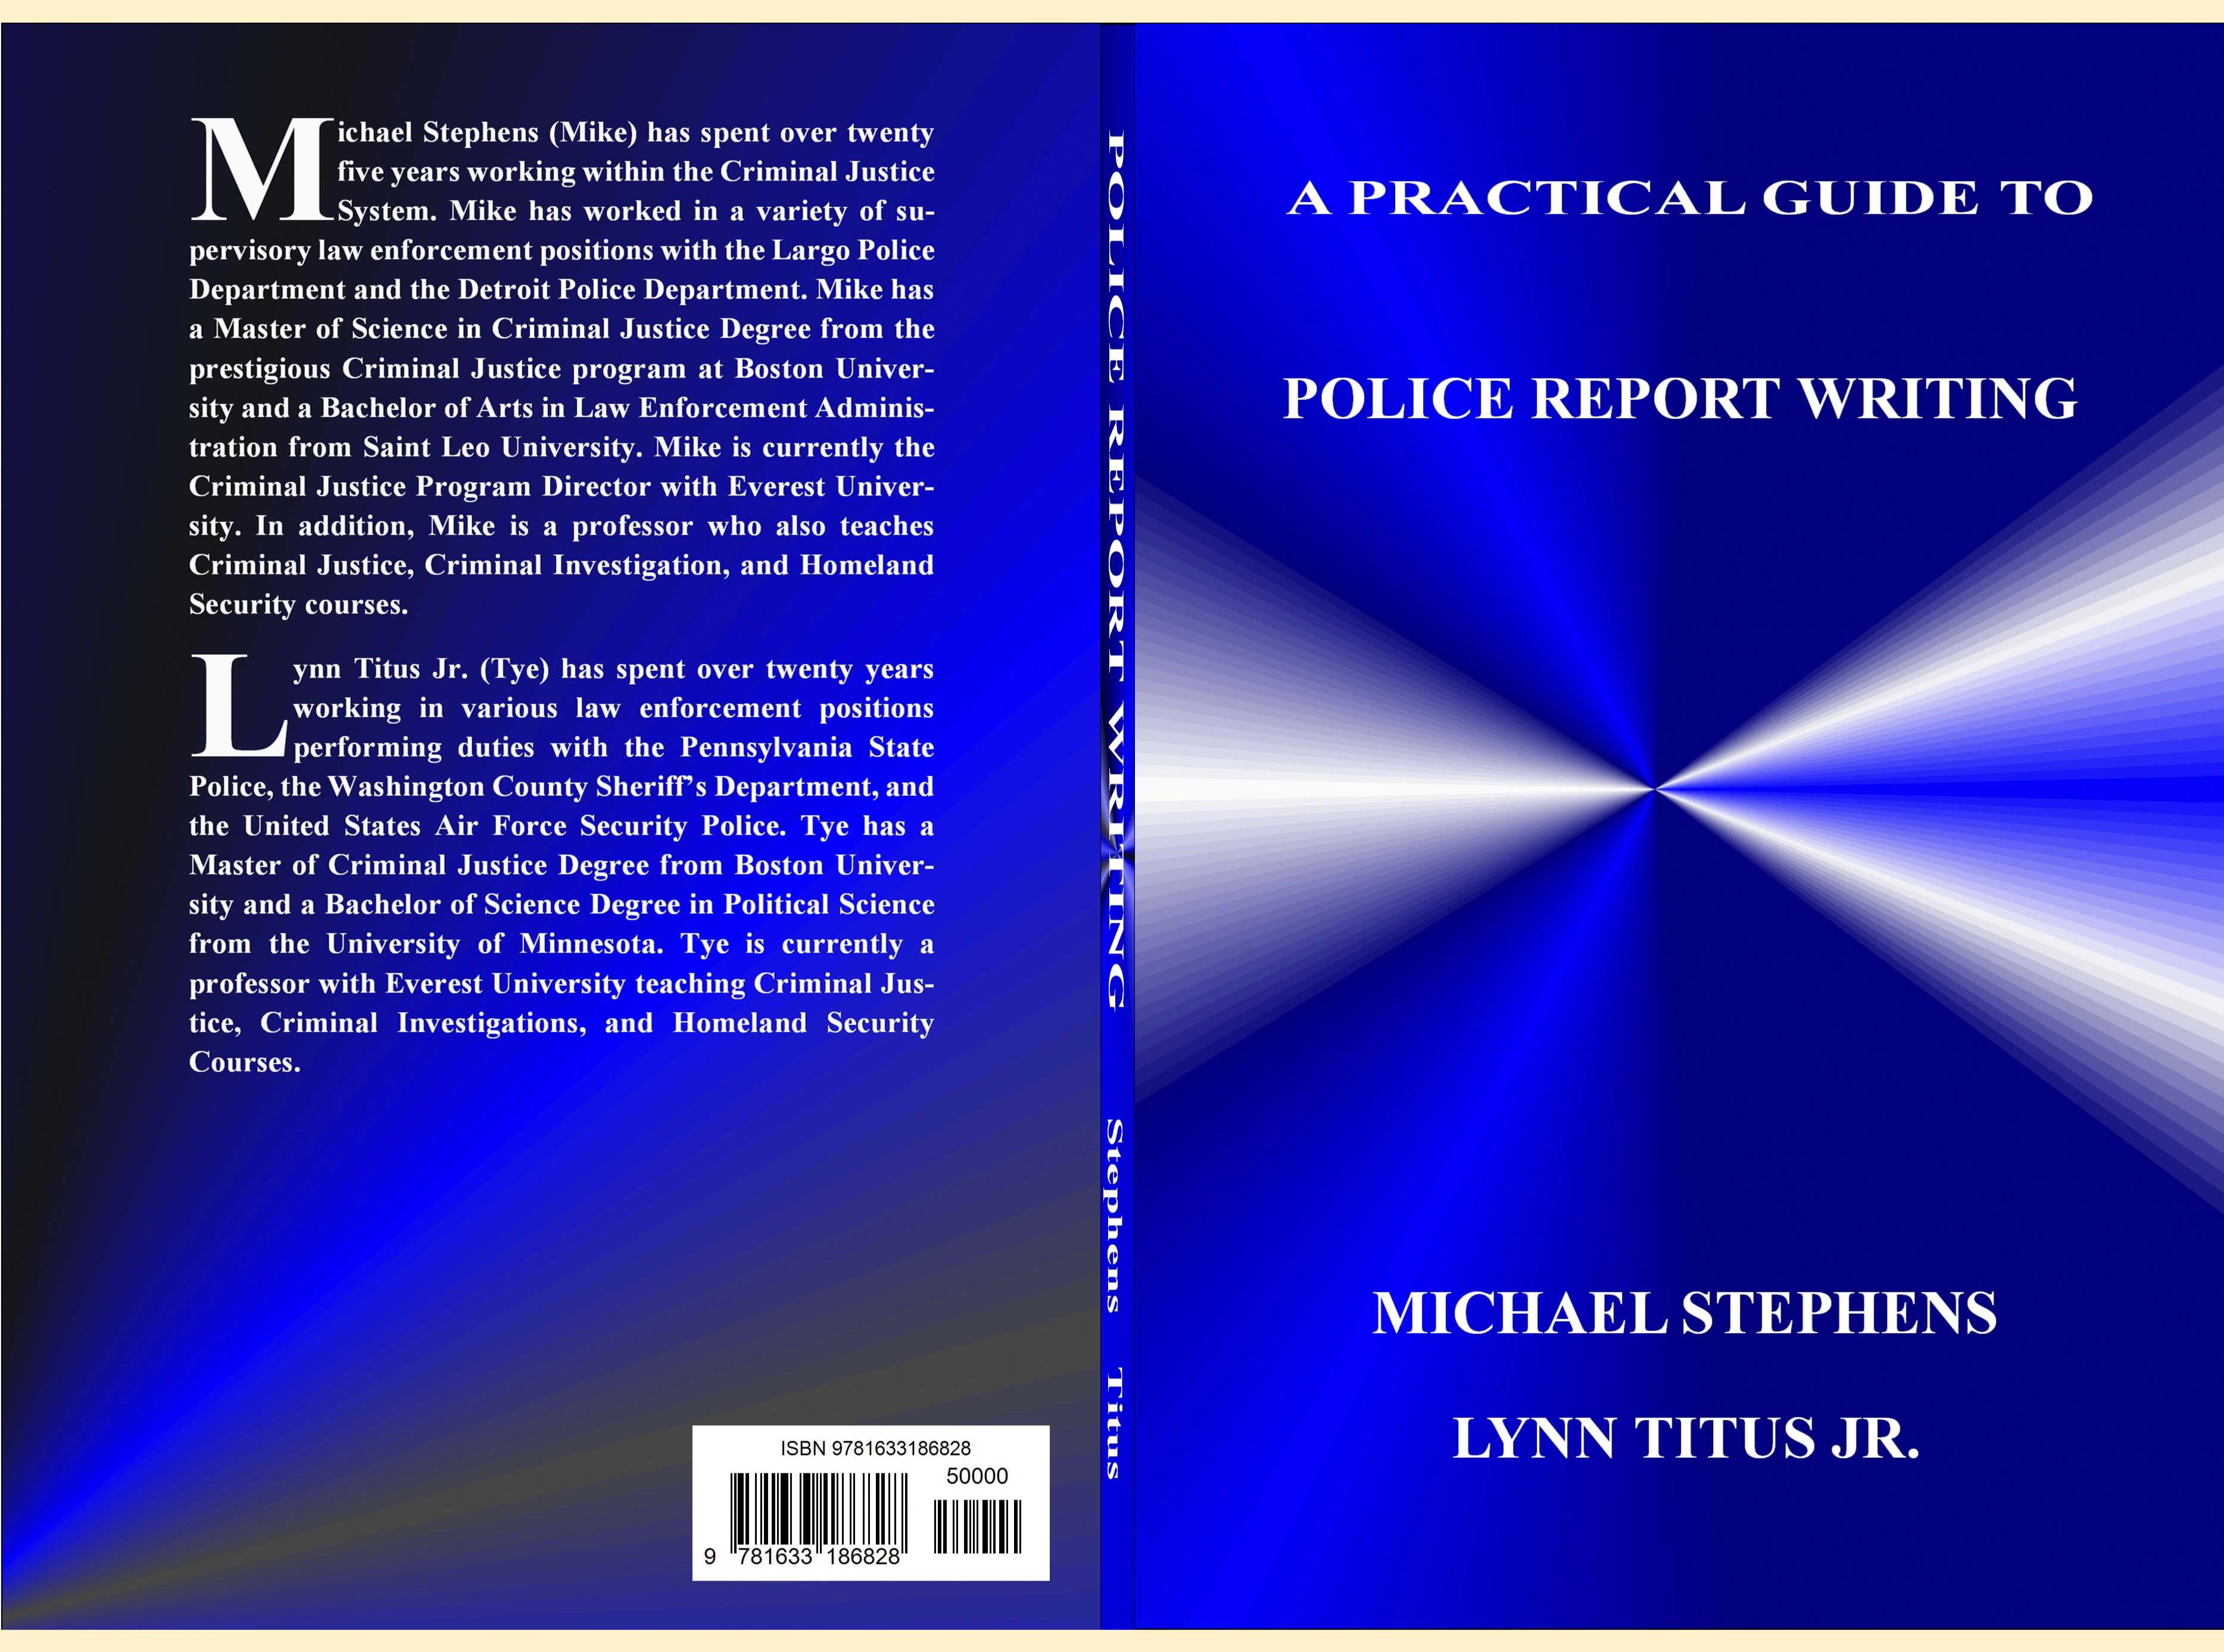 Guidelines for improving your report writing - PoliceOne